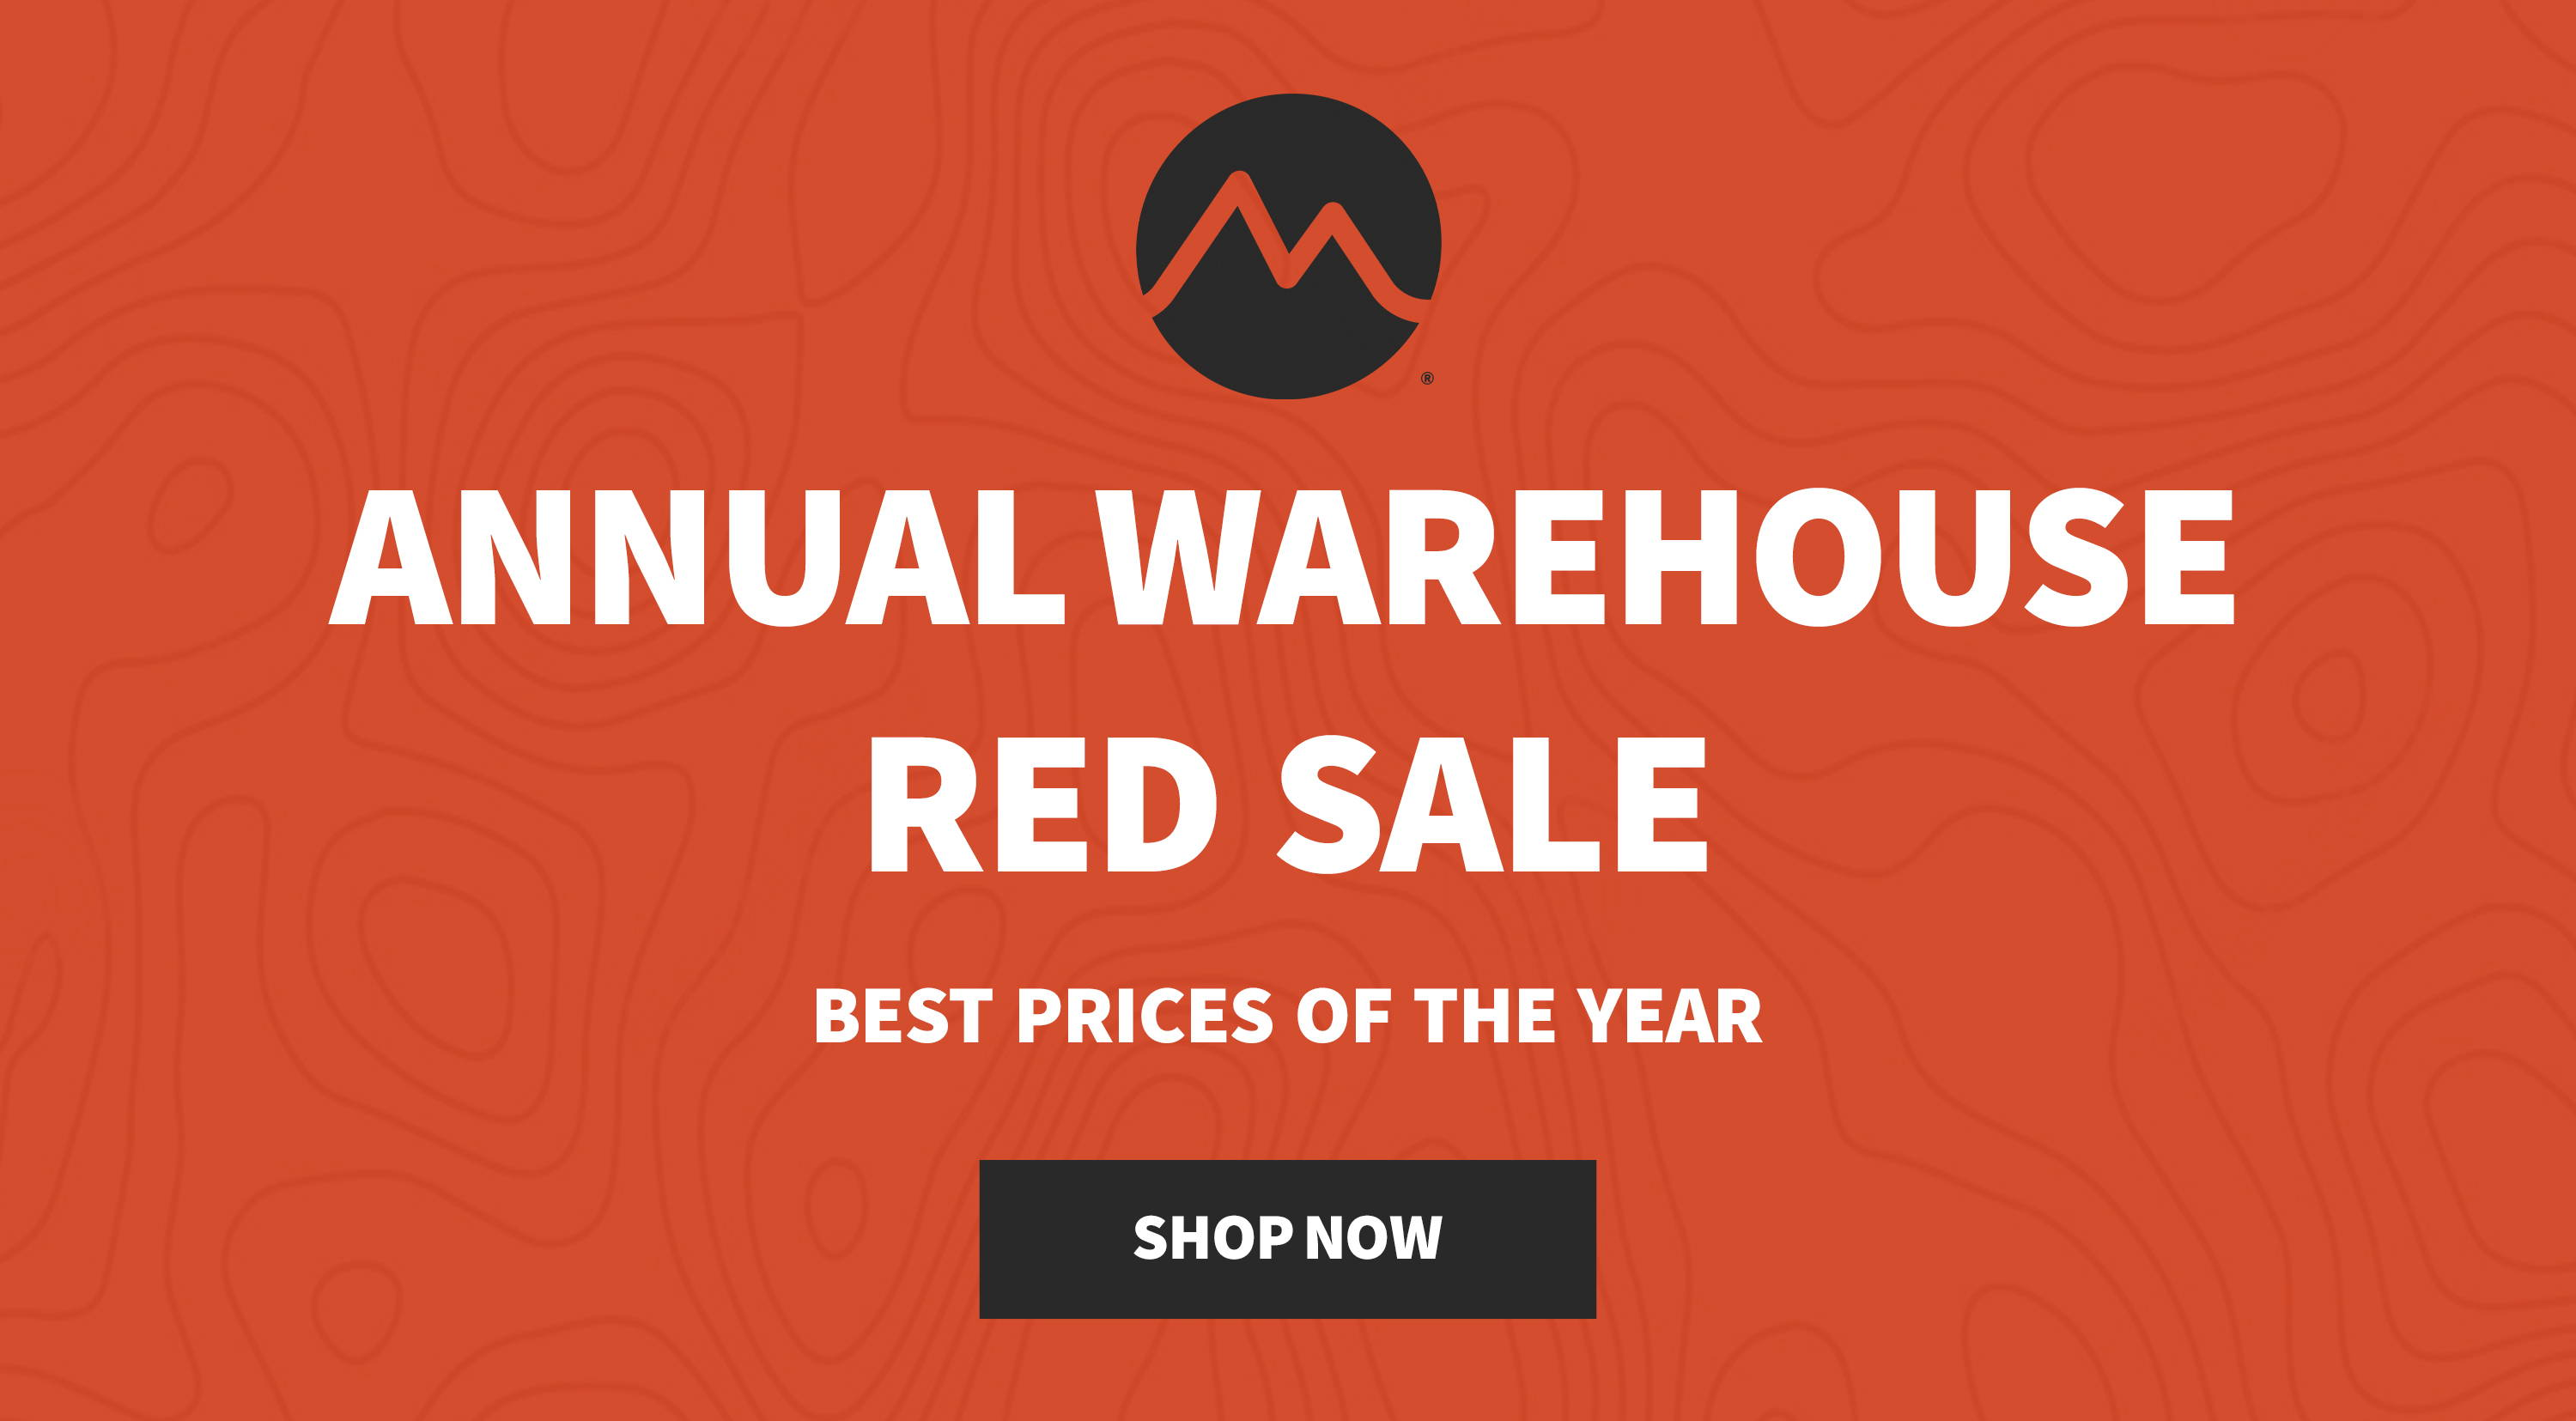 Annual Warehouse Red Sale